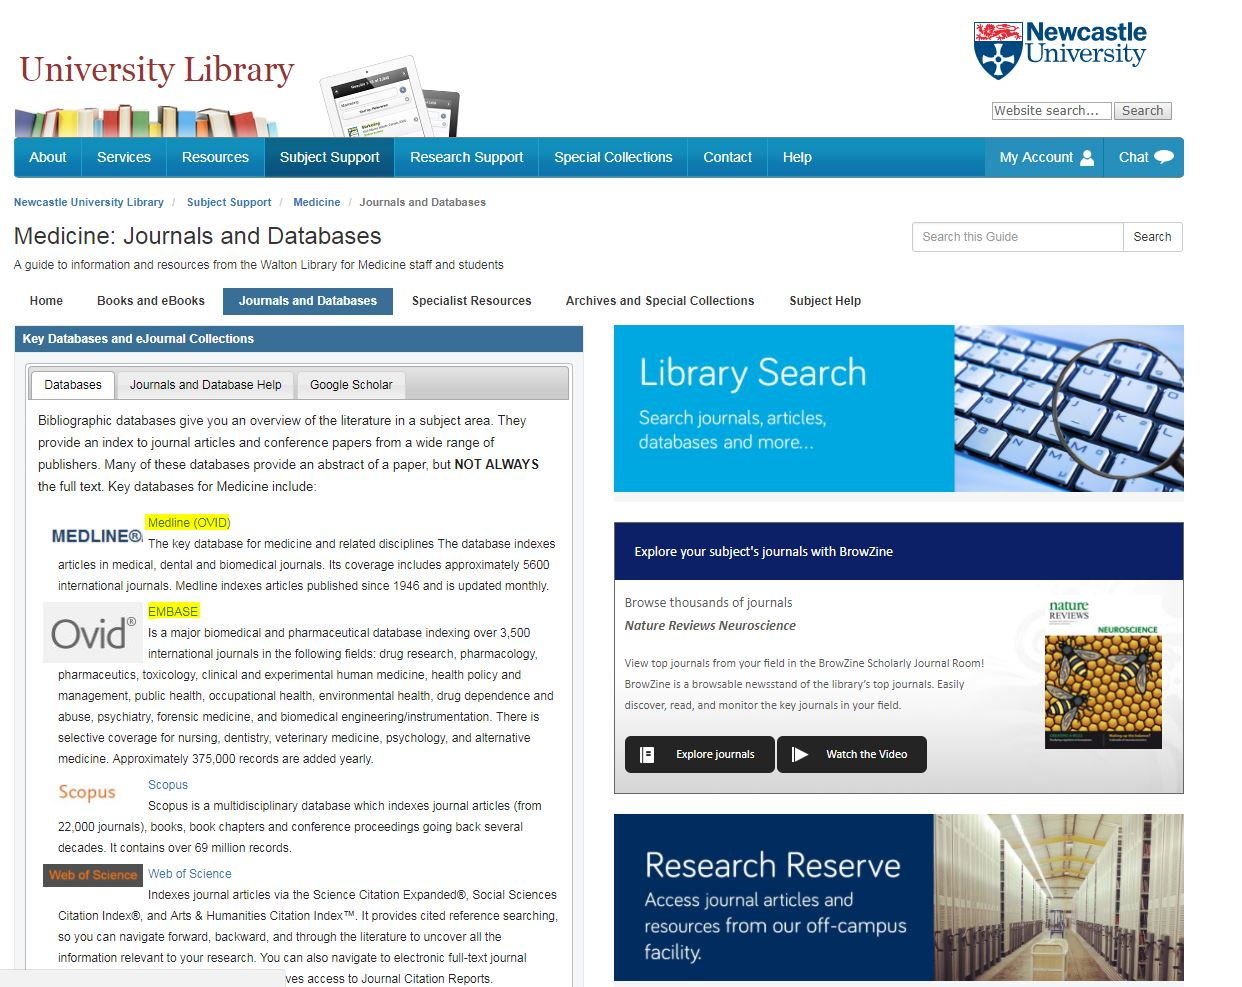 Medical subject library guide screenshot with OVID databases highlighted